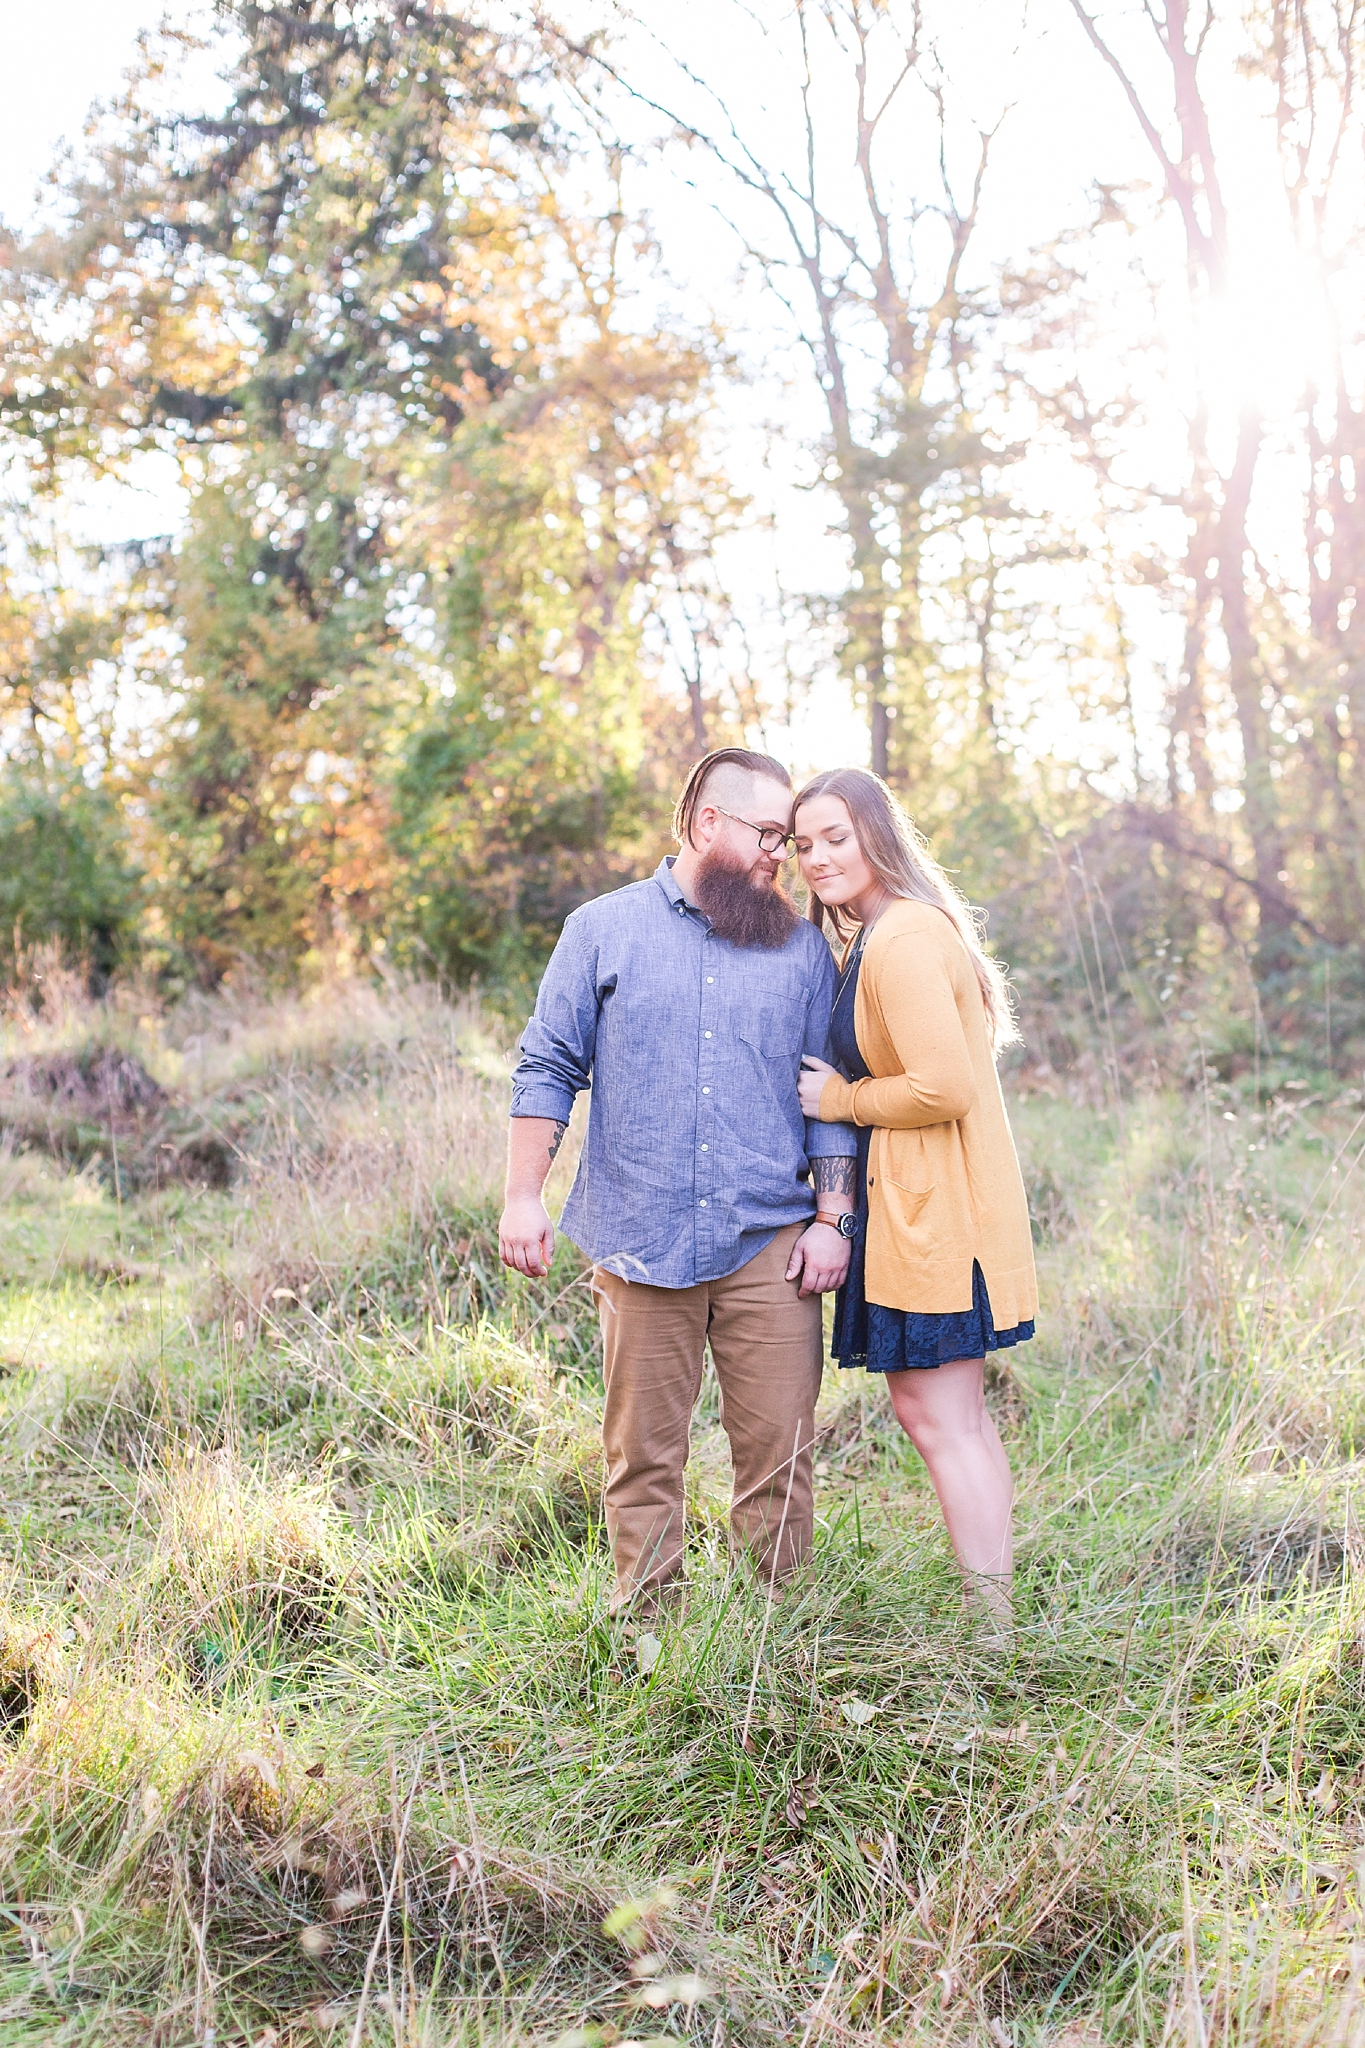 cozy-fall-engagement-photos-at-an-old-family-farm-in-monroe-michigan-by-courtney-carolyn-photography_0018.jpg